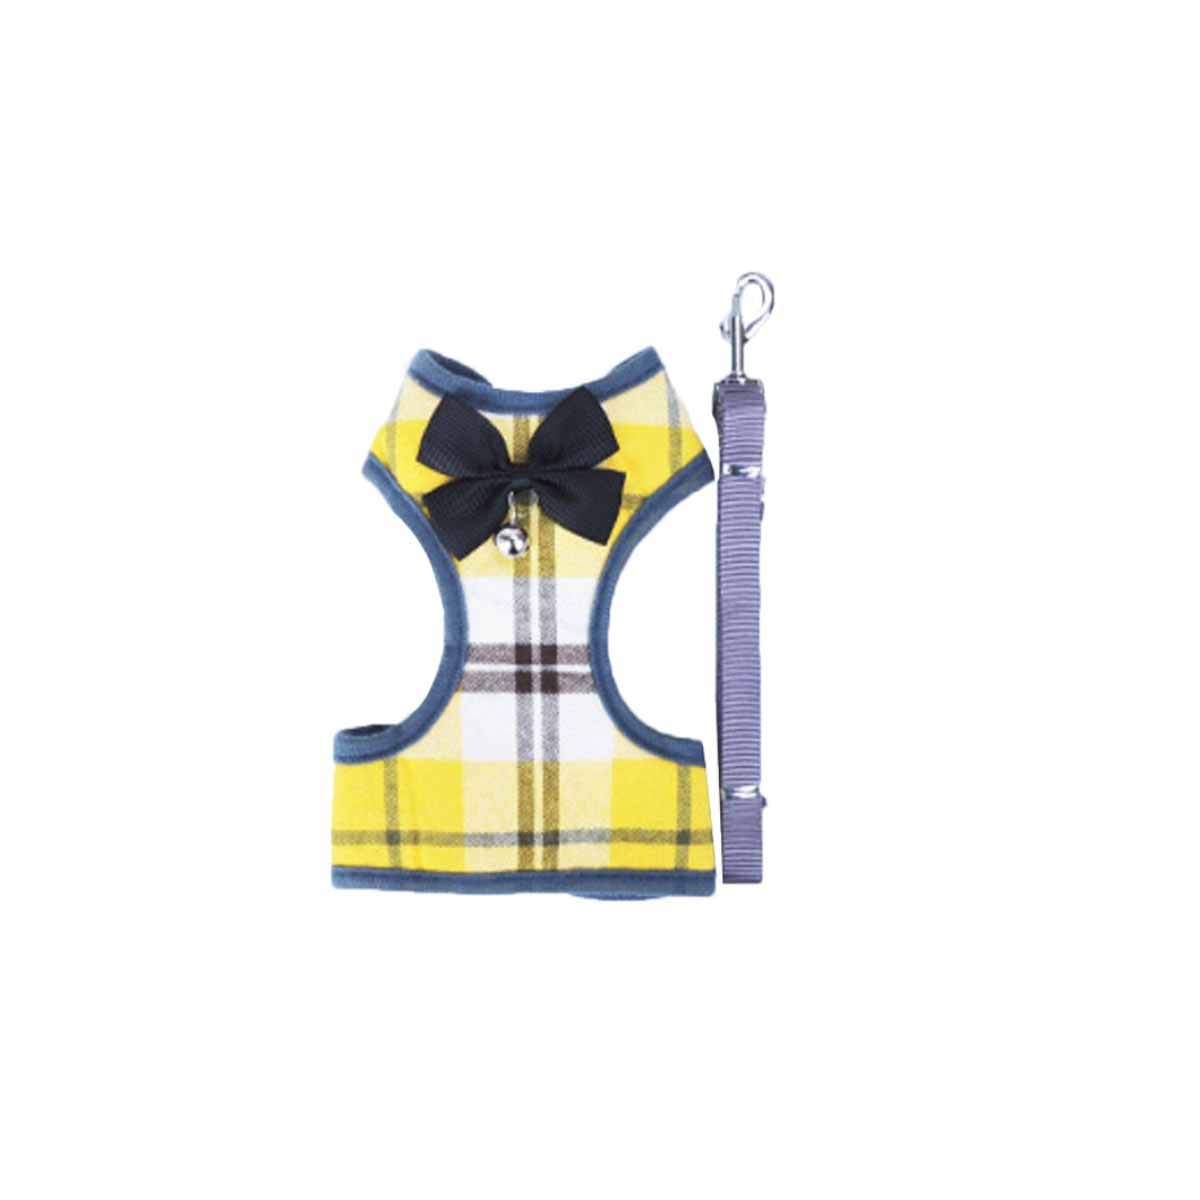 Dog Chain, Dog Leash, Teddy Dog Chain, Small Dog Leash, Evening Gown, Chest Strap, Hyena Rope, Pet Supplies (color   Yellow and White, Size   S)